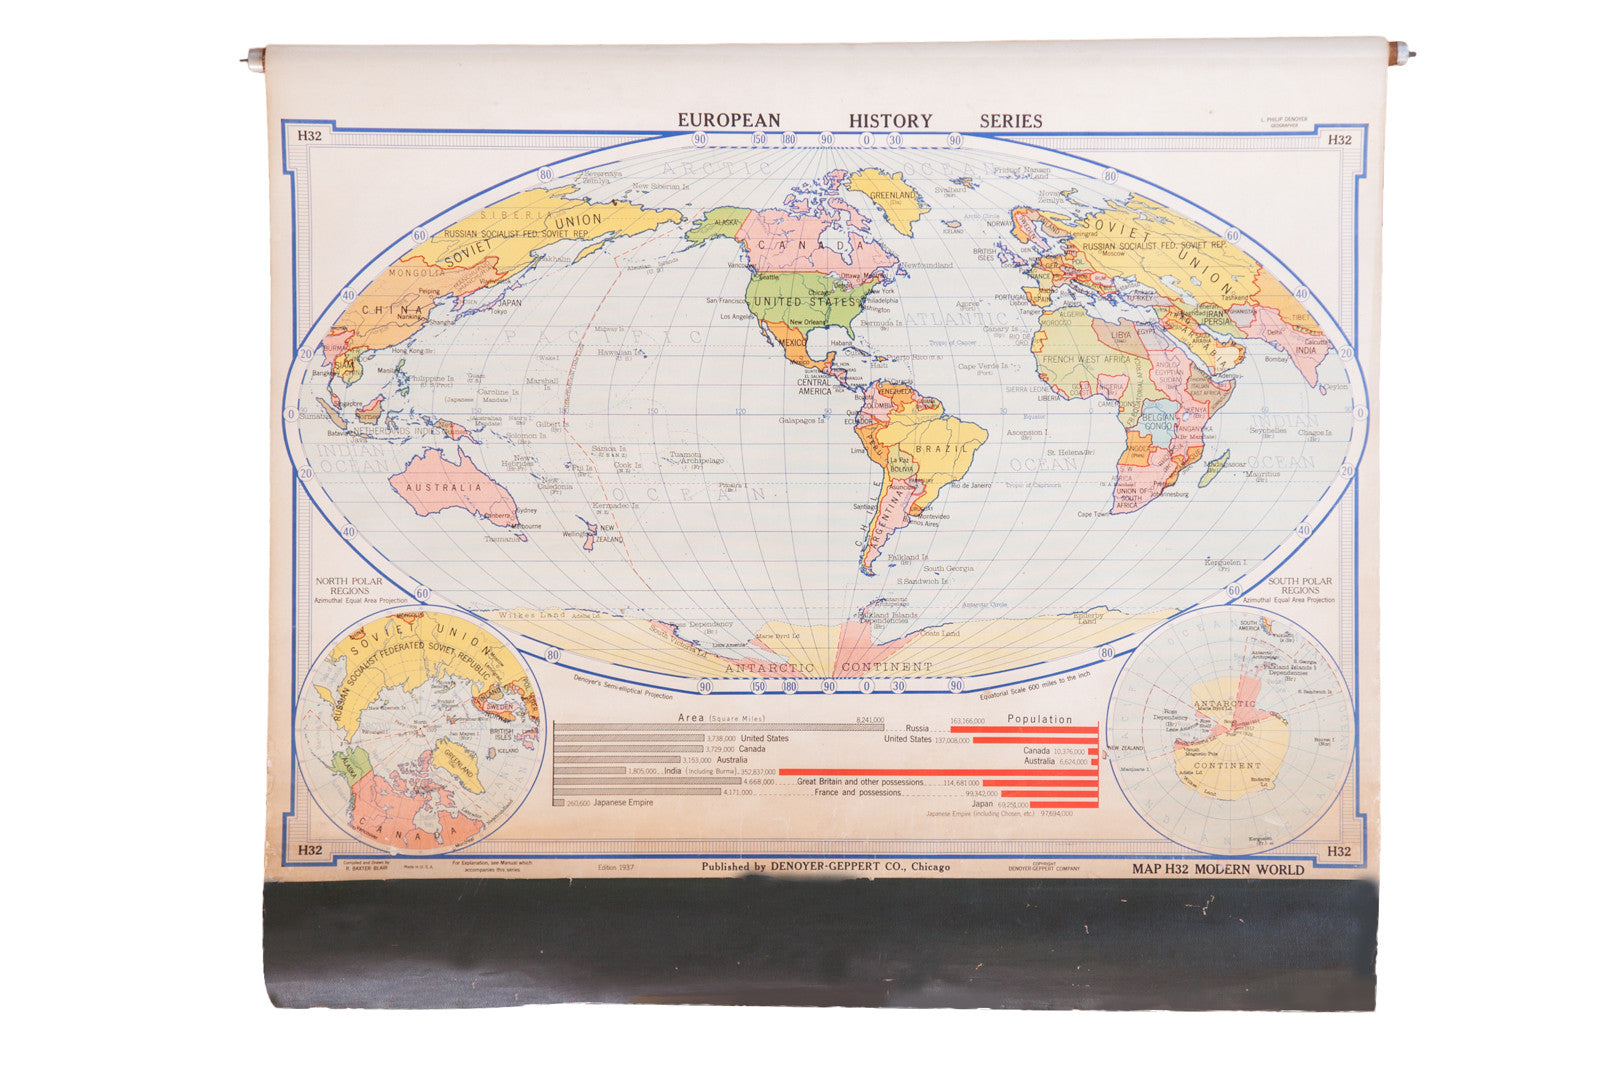 Vintage 1930s pull down map of modern world previous image next image sold vintage 1930s pull down map of modern world gumiabroncs Choice Image